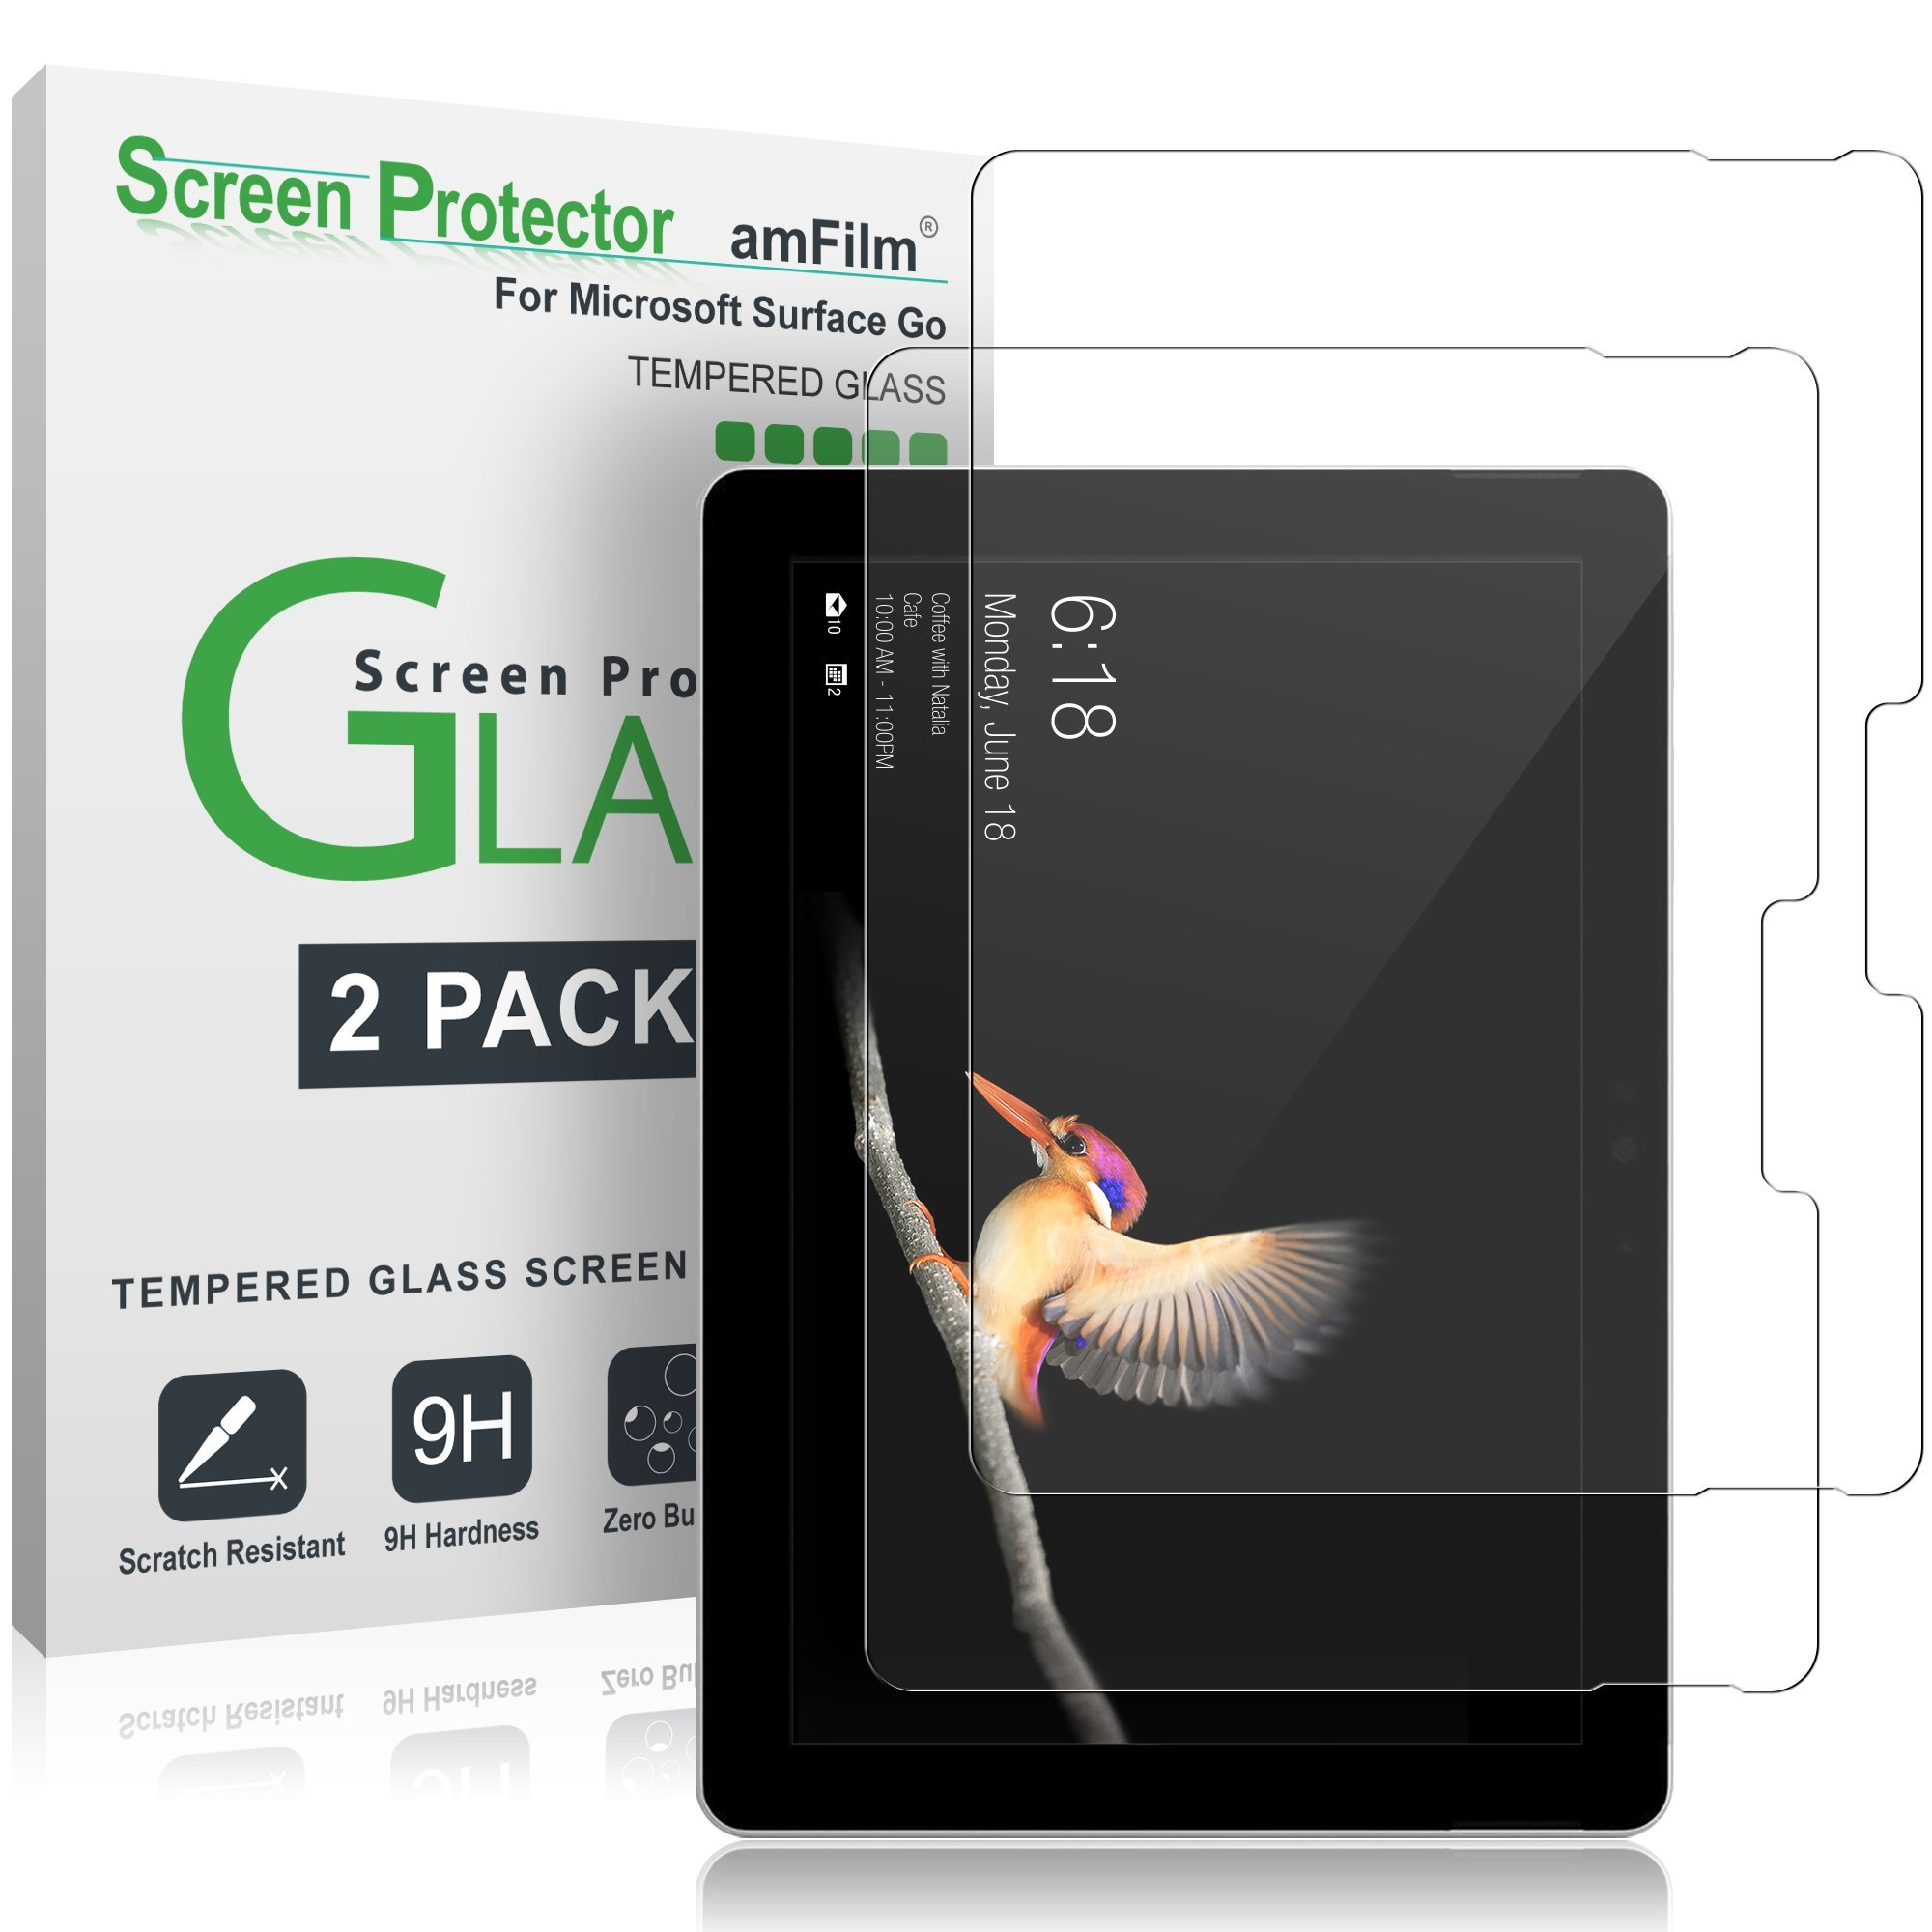 amFilm Surface Go Screen Protector Glass (2 Pack), Tempered Glass Screen Protector for Microsoft Surface Go 2-Pack